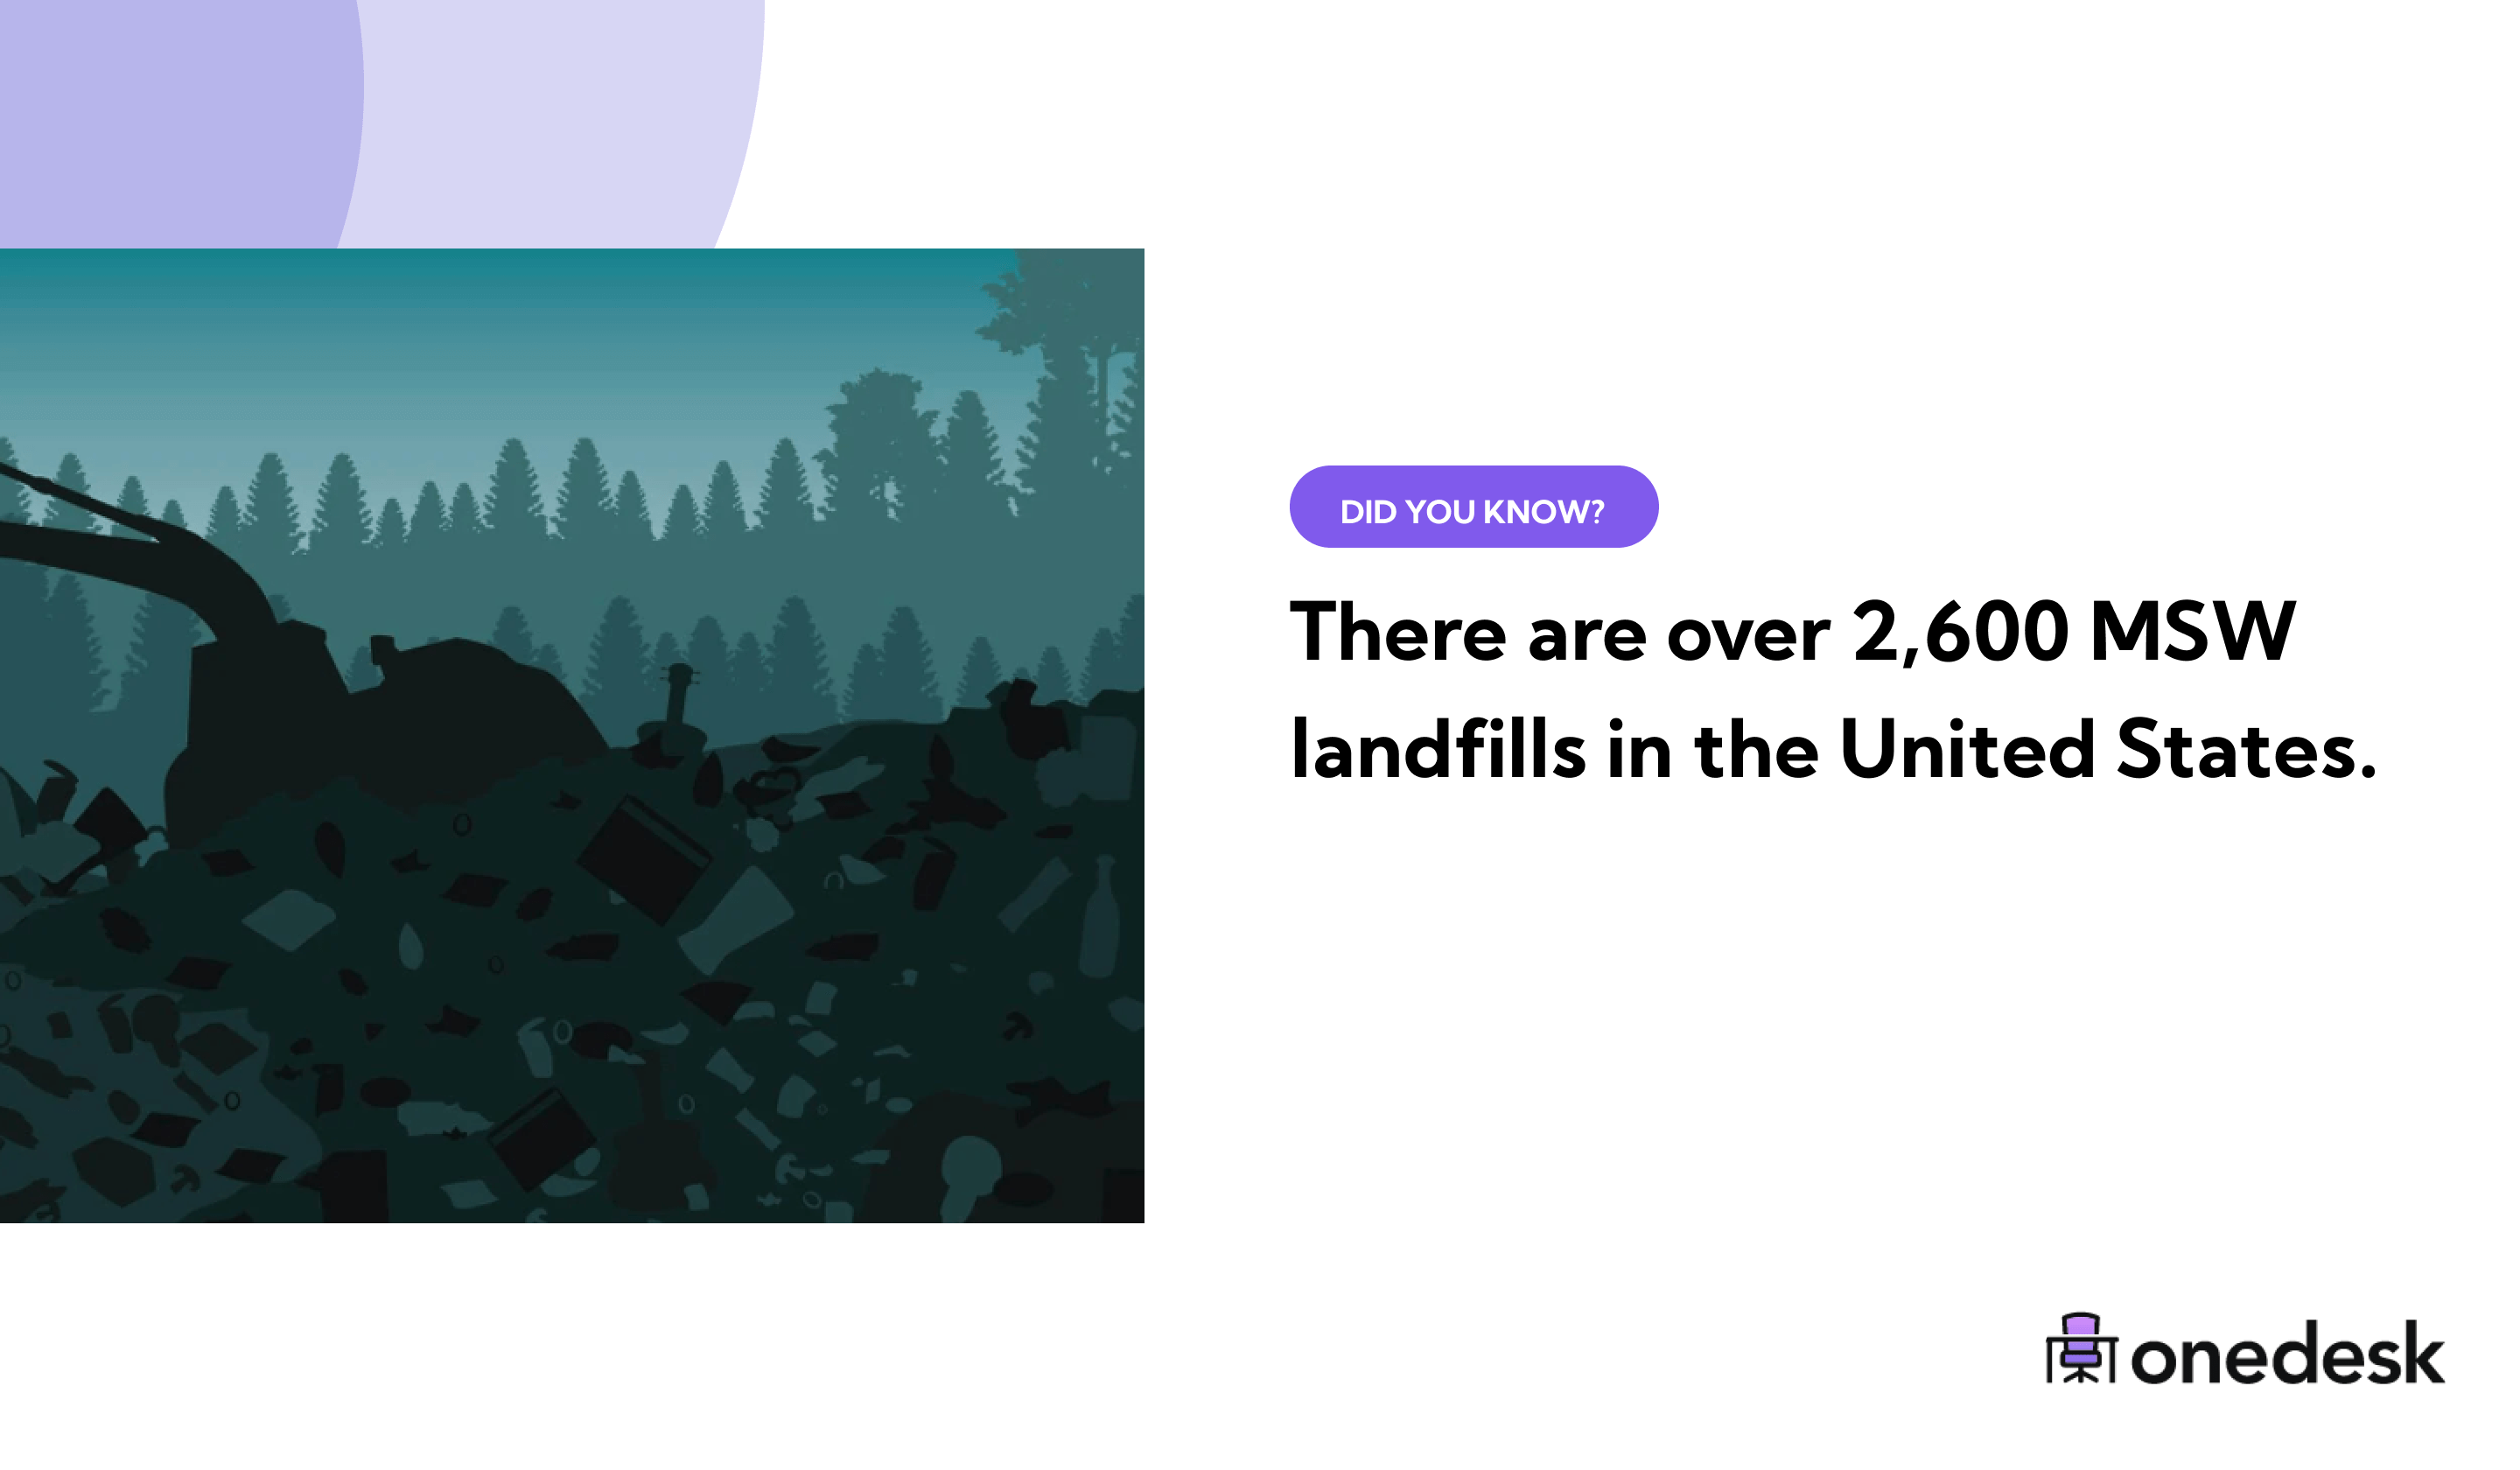 how many landfills are in the united states